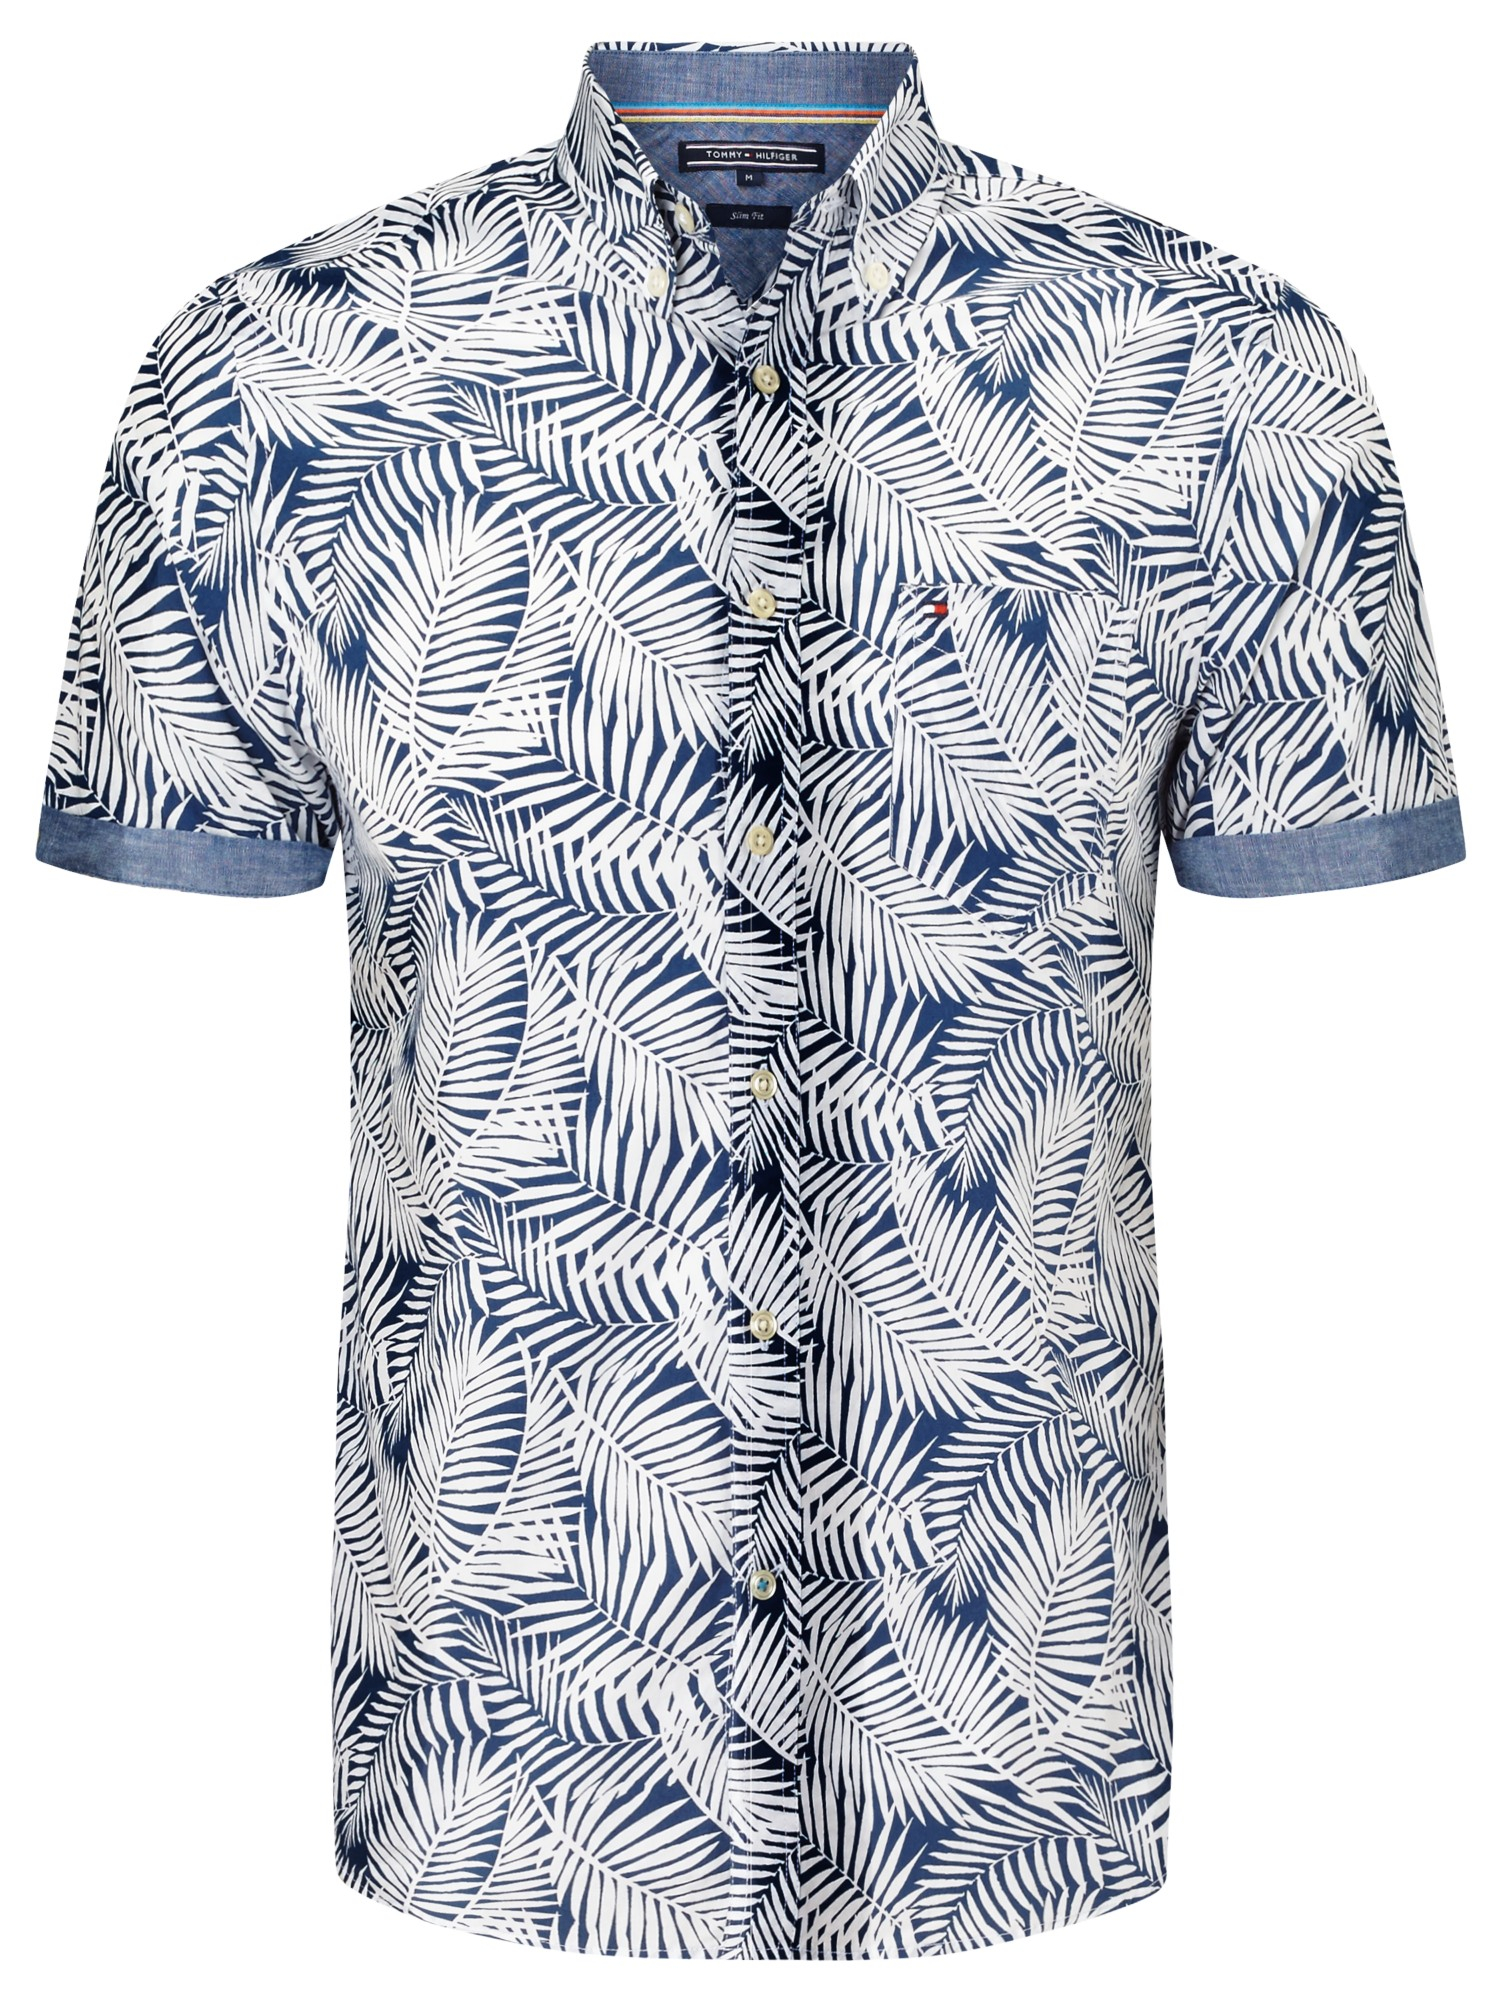 3eb84c4f Tommy Hilfiger Leaf Print Short Sleeve Shirt in Blue for Men - Lyst